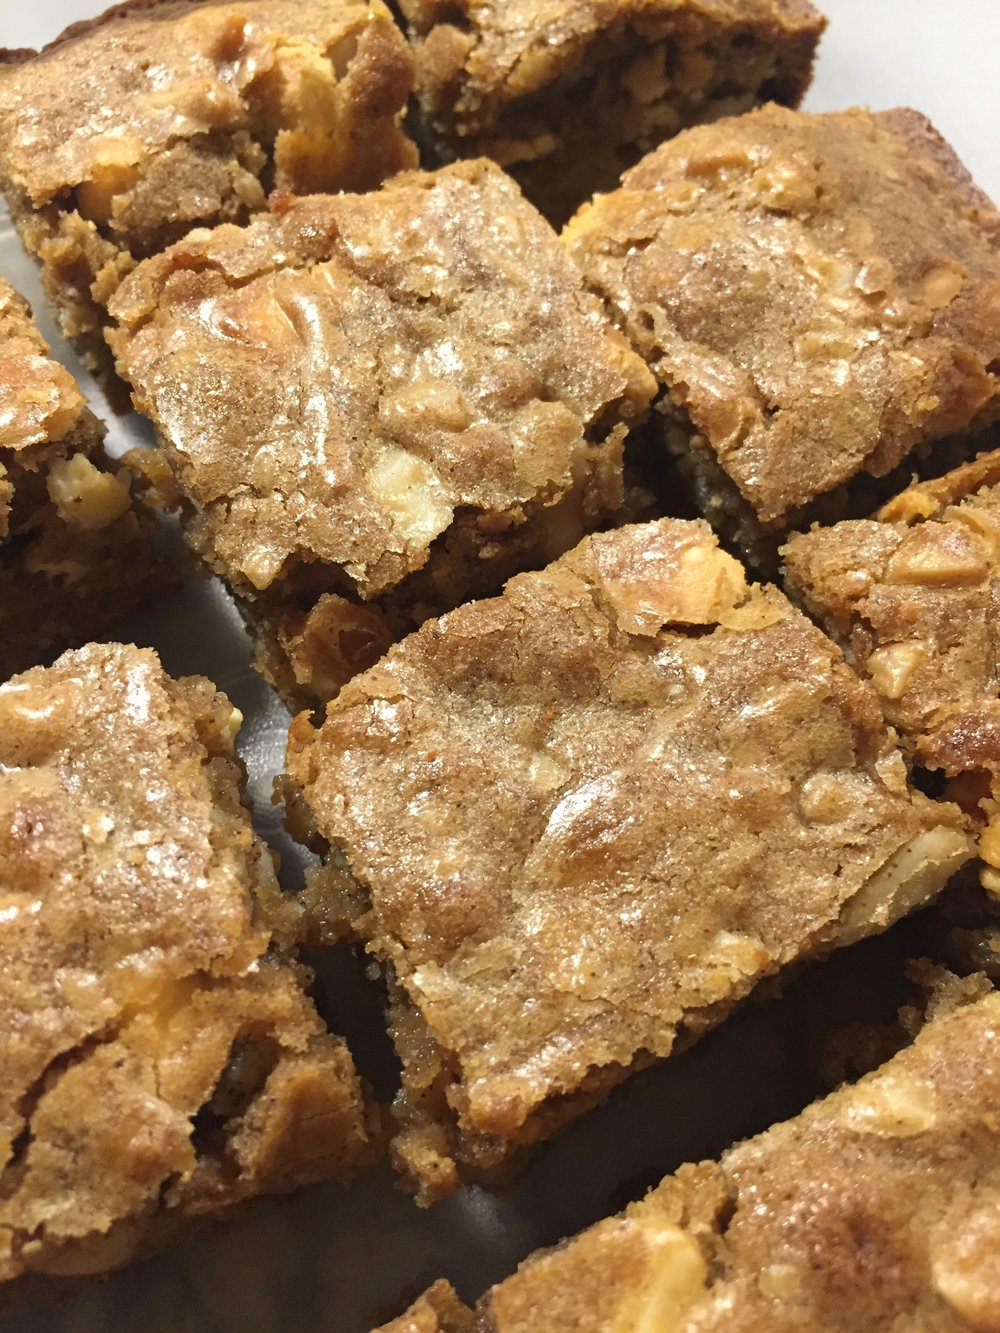 45WhiteChocolateBlondies3.JPG